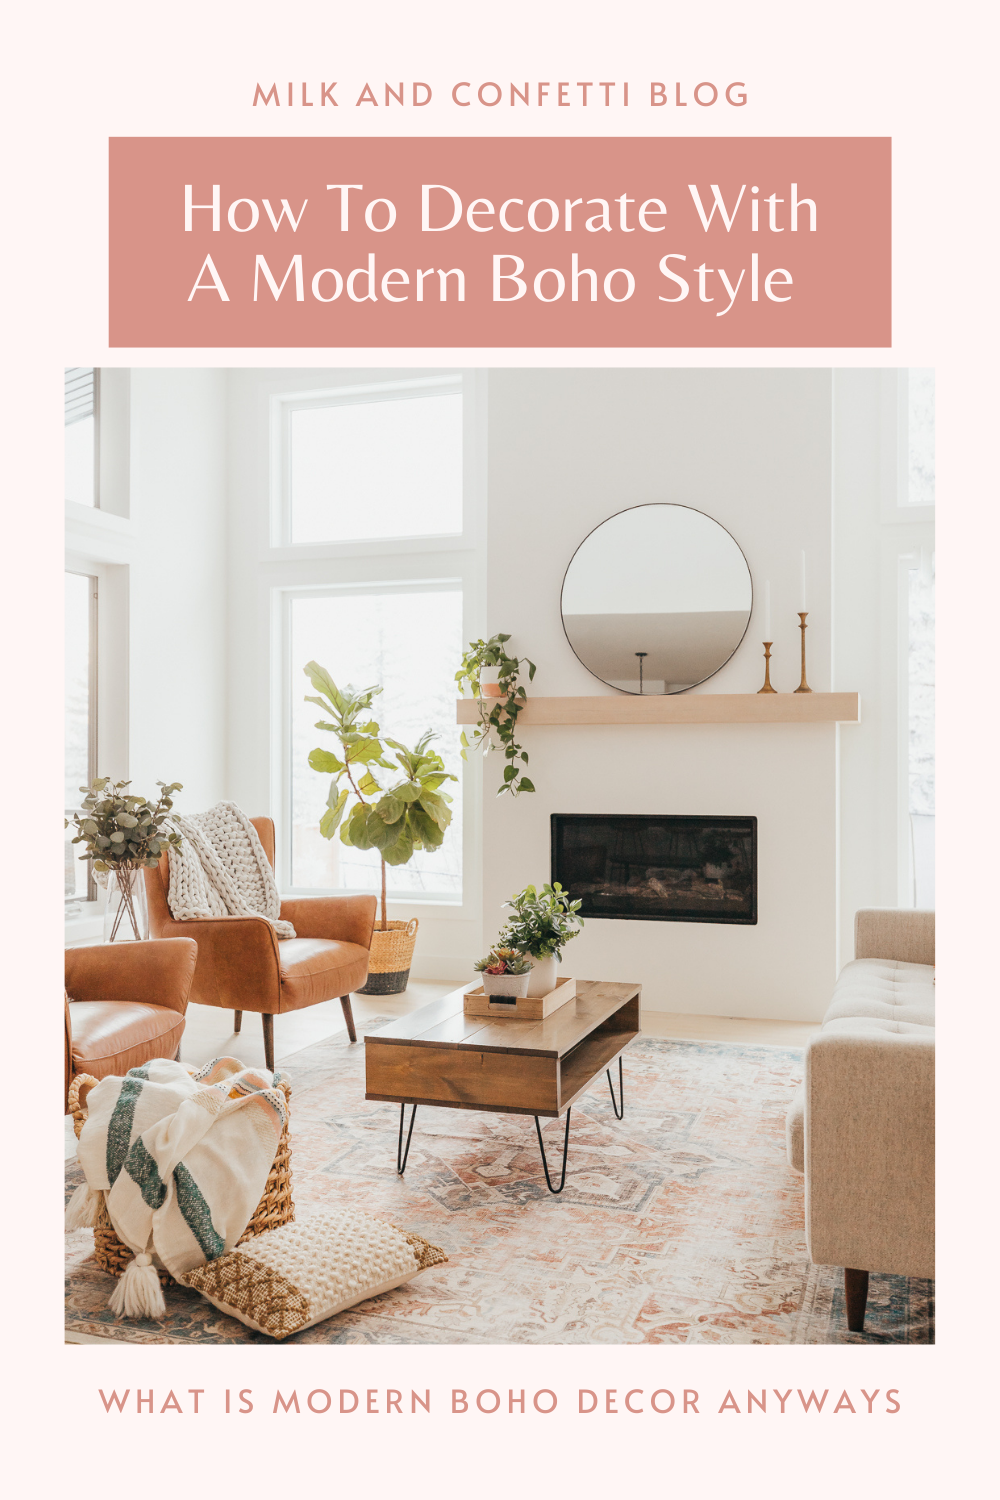 With a mixture of colors, textures, patterns and accessories we can achieve the comfortable, relaxing and sometimes whimsical boho decor and style in our modern homes.